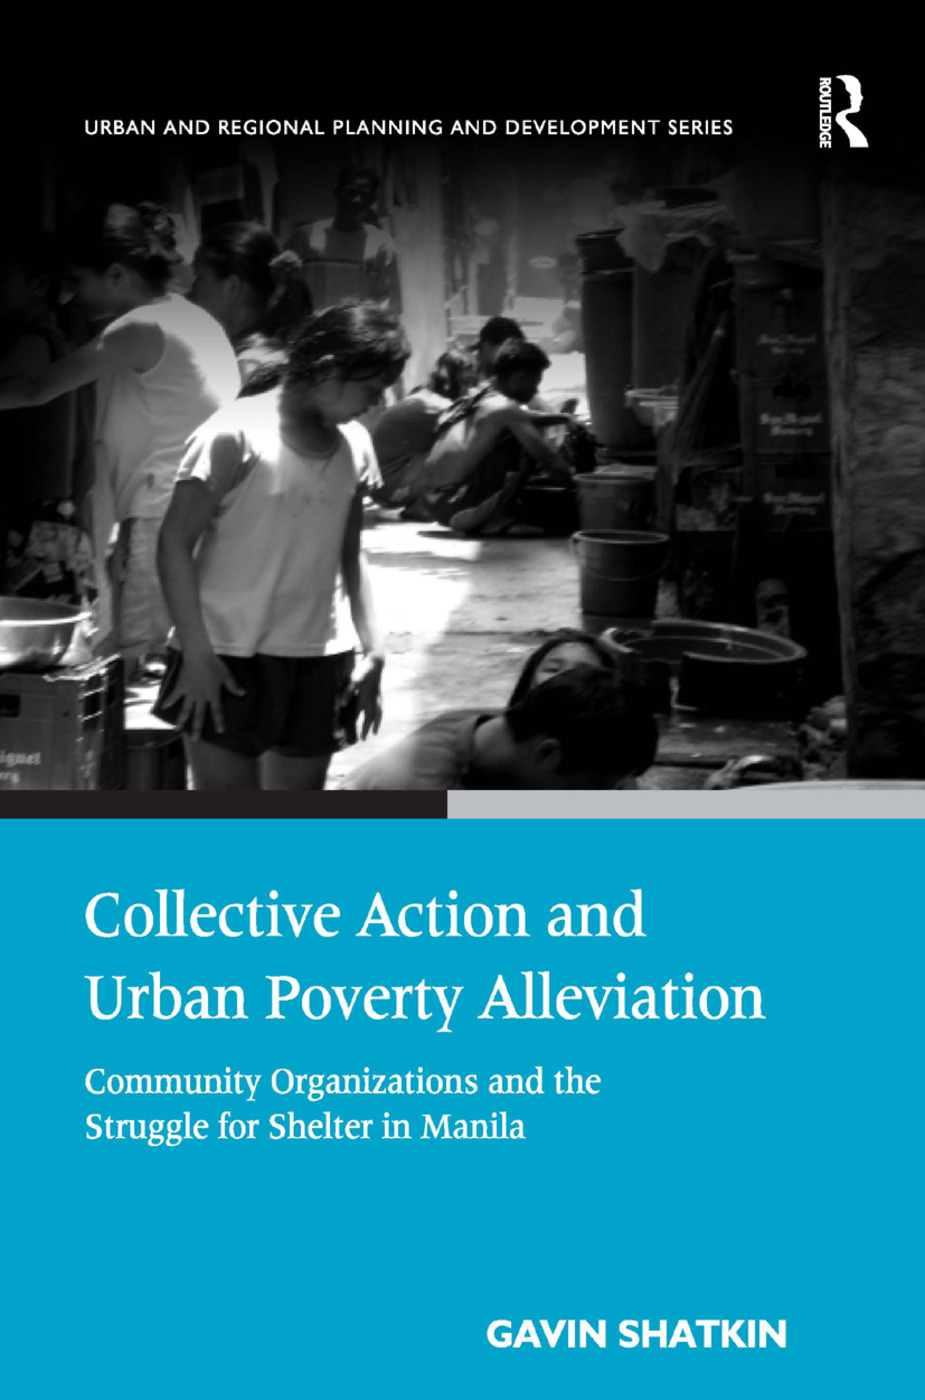 Collective Action and Urban Poverty Alleviation: Community Organizations and the Struggle for Shelter in Manila, 1st Edition (Hardback) book cover